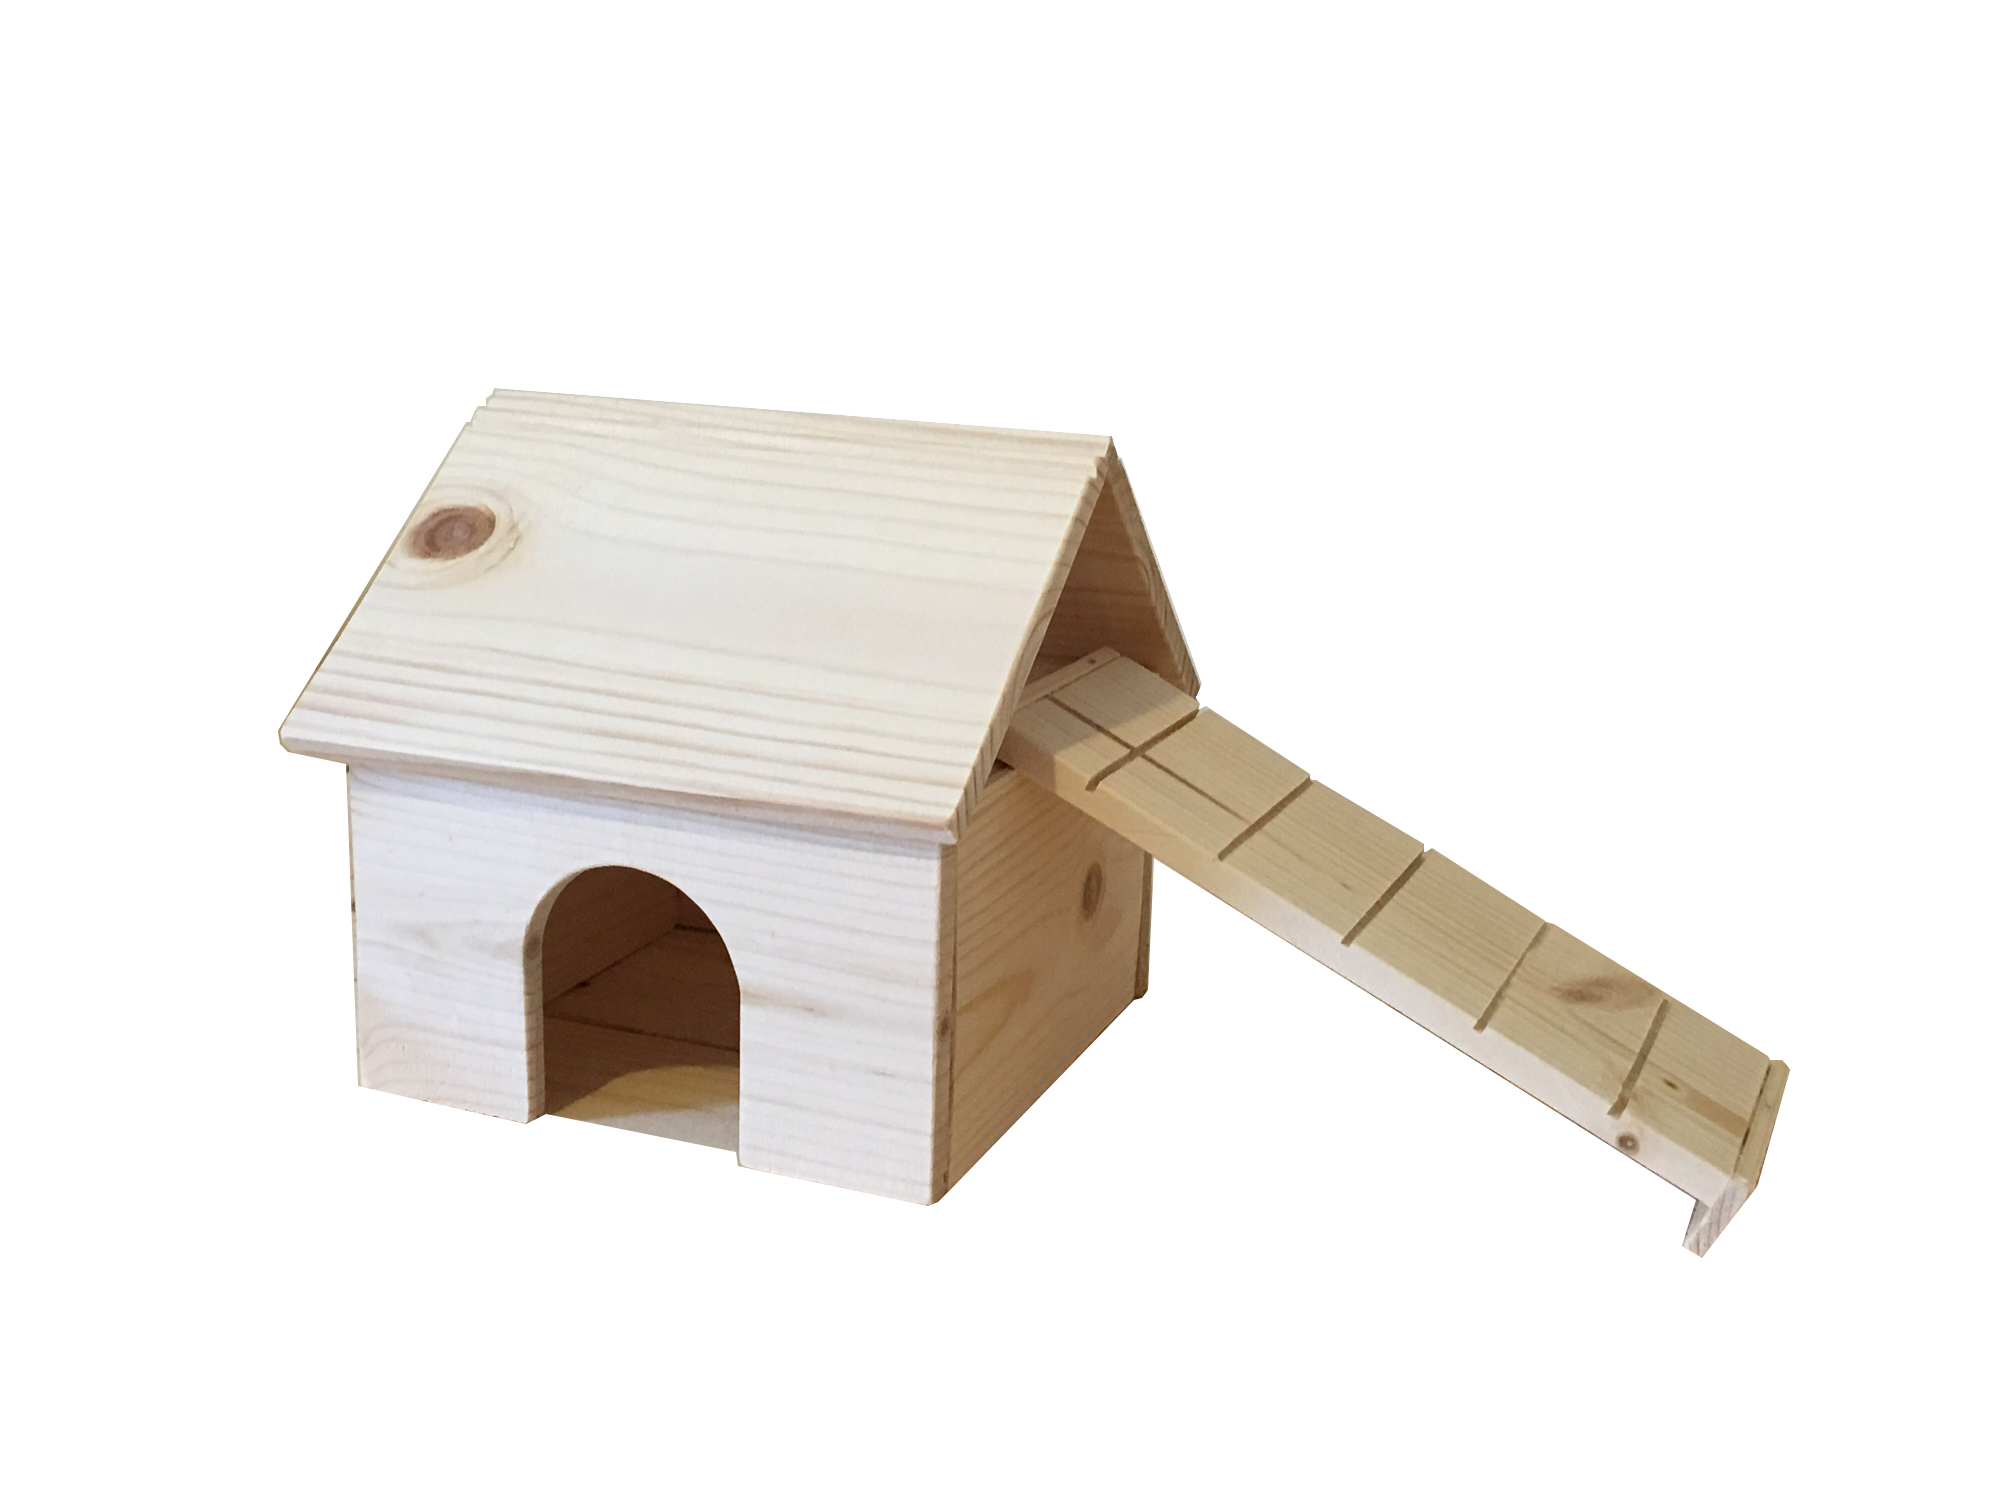 ... by Brand / *Our Own Brand Products* / Natural Wood Dwarf Hamster House